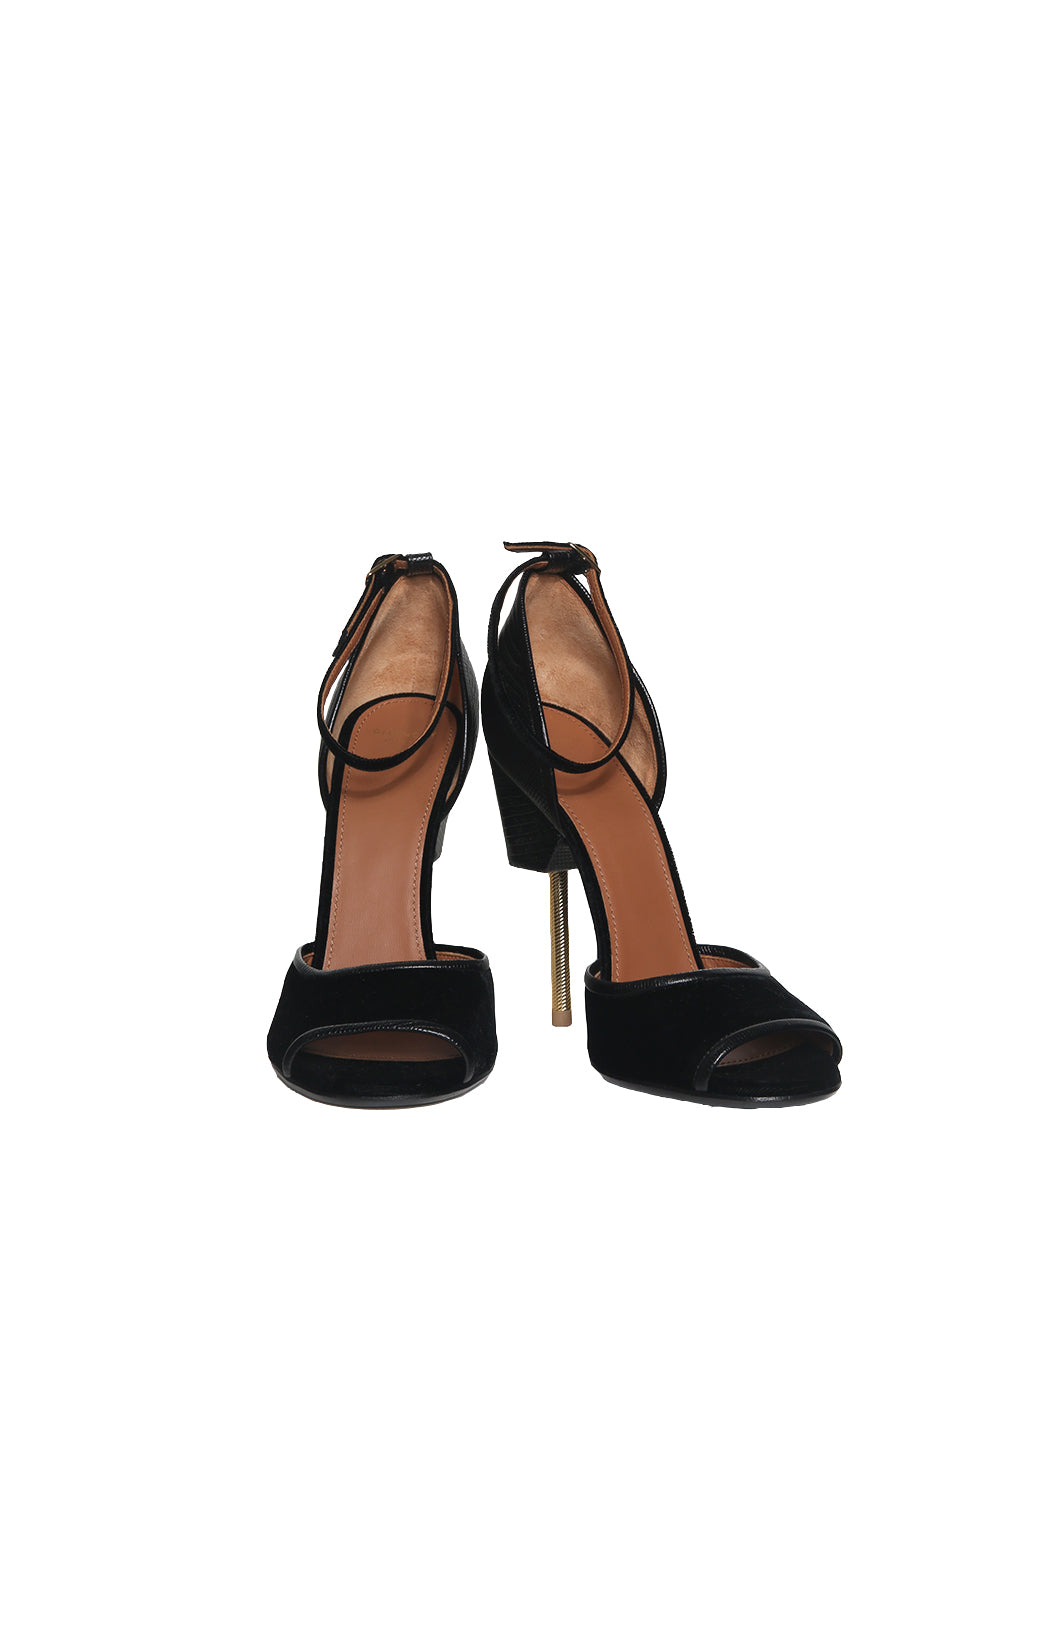 Front view of GIVENCHY Black Velvet/Lizard High Heeled Sandal Size: 39 (US 9)